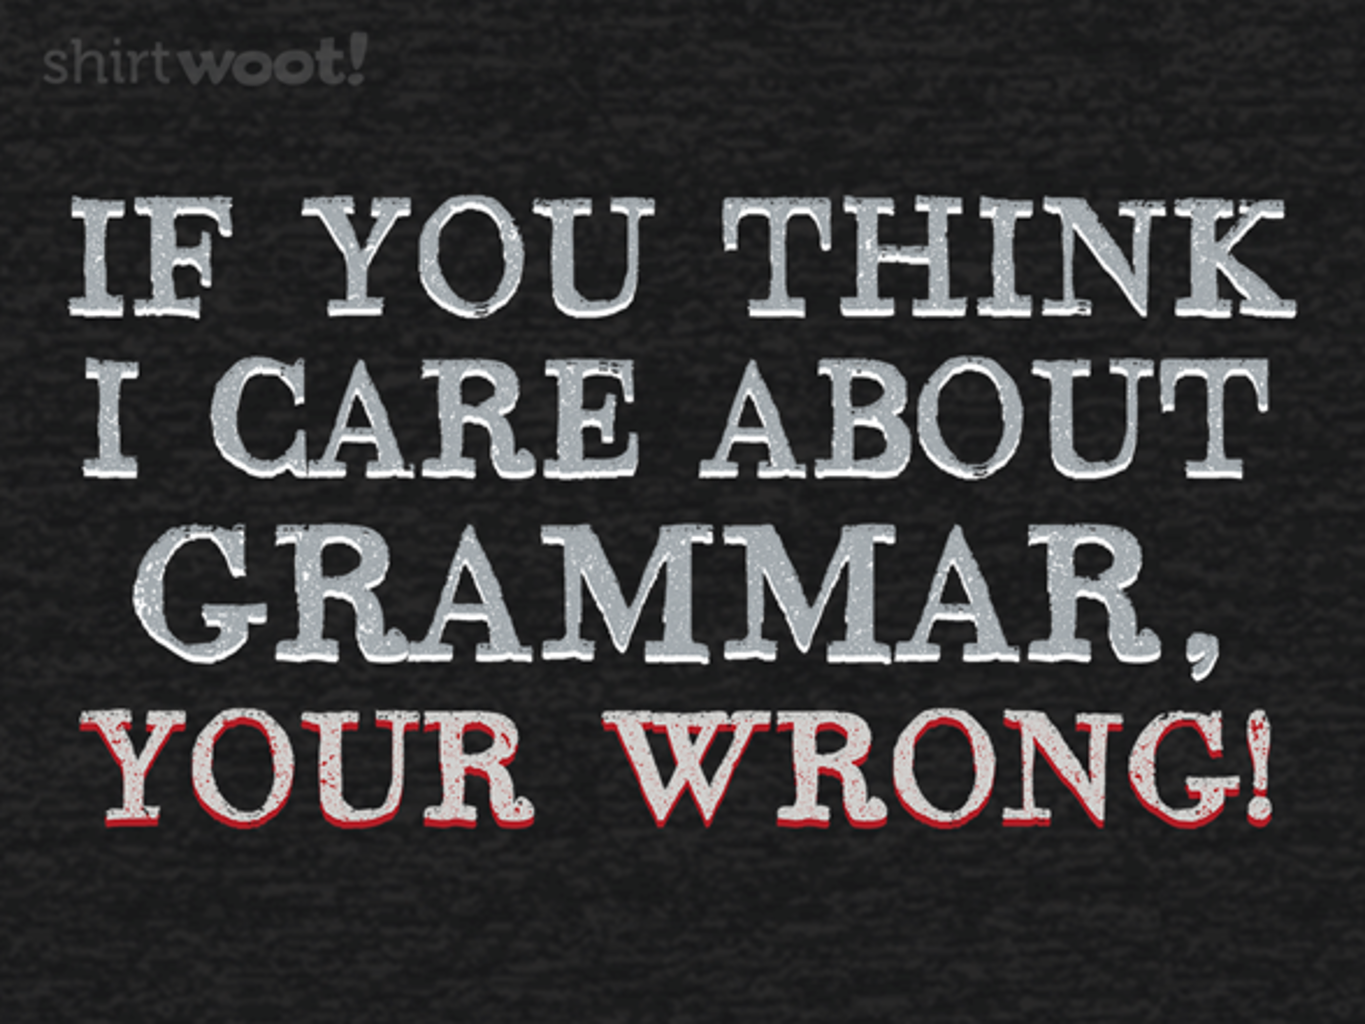 Woot!: It's You're*